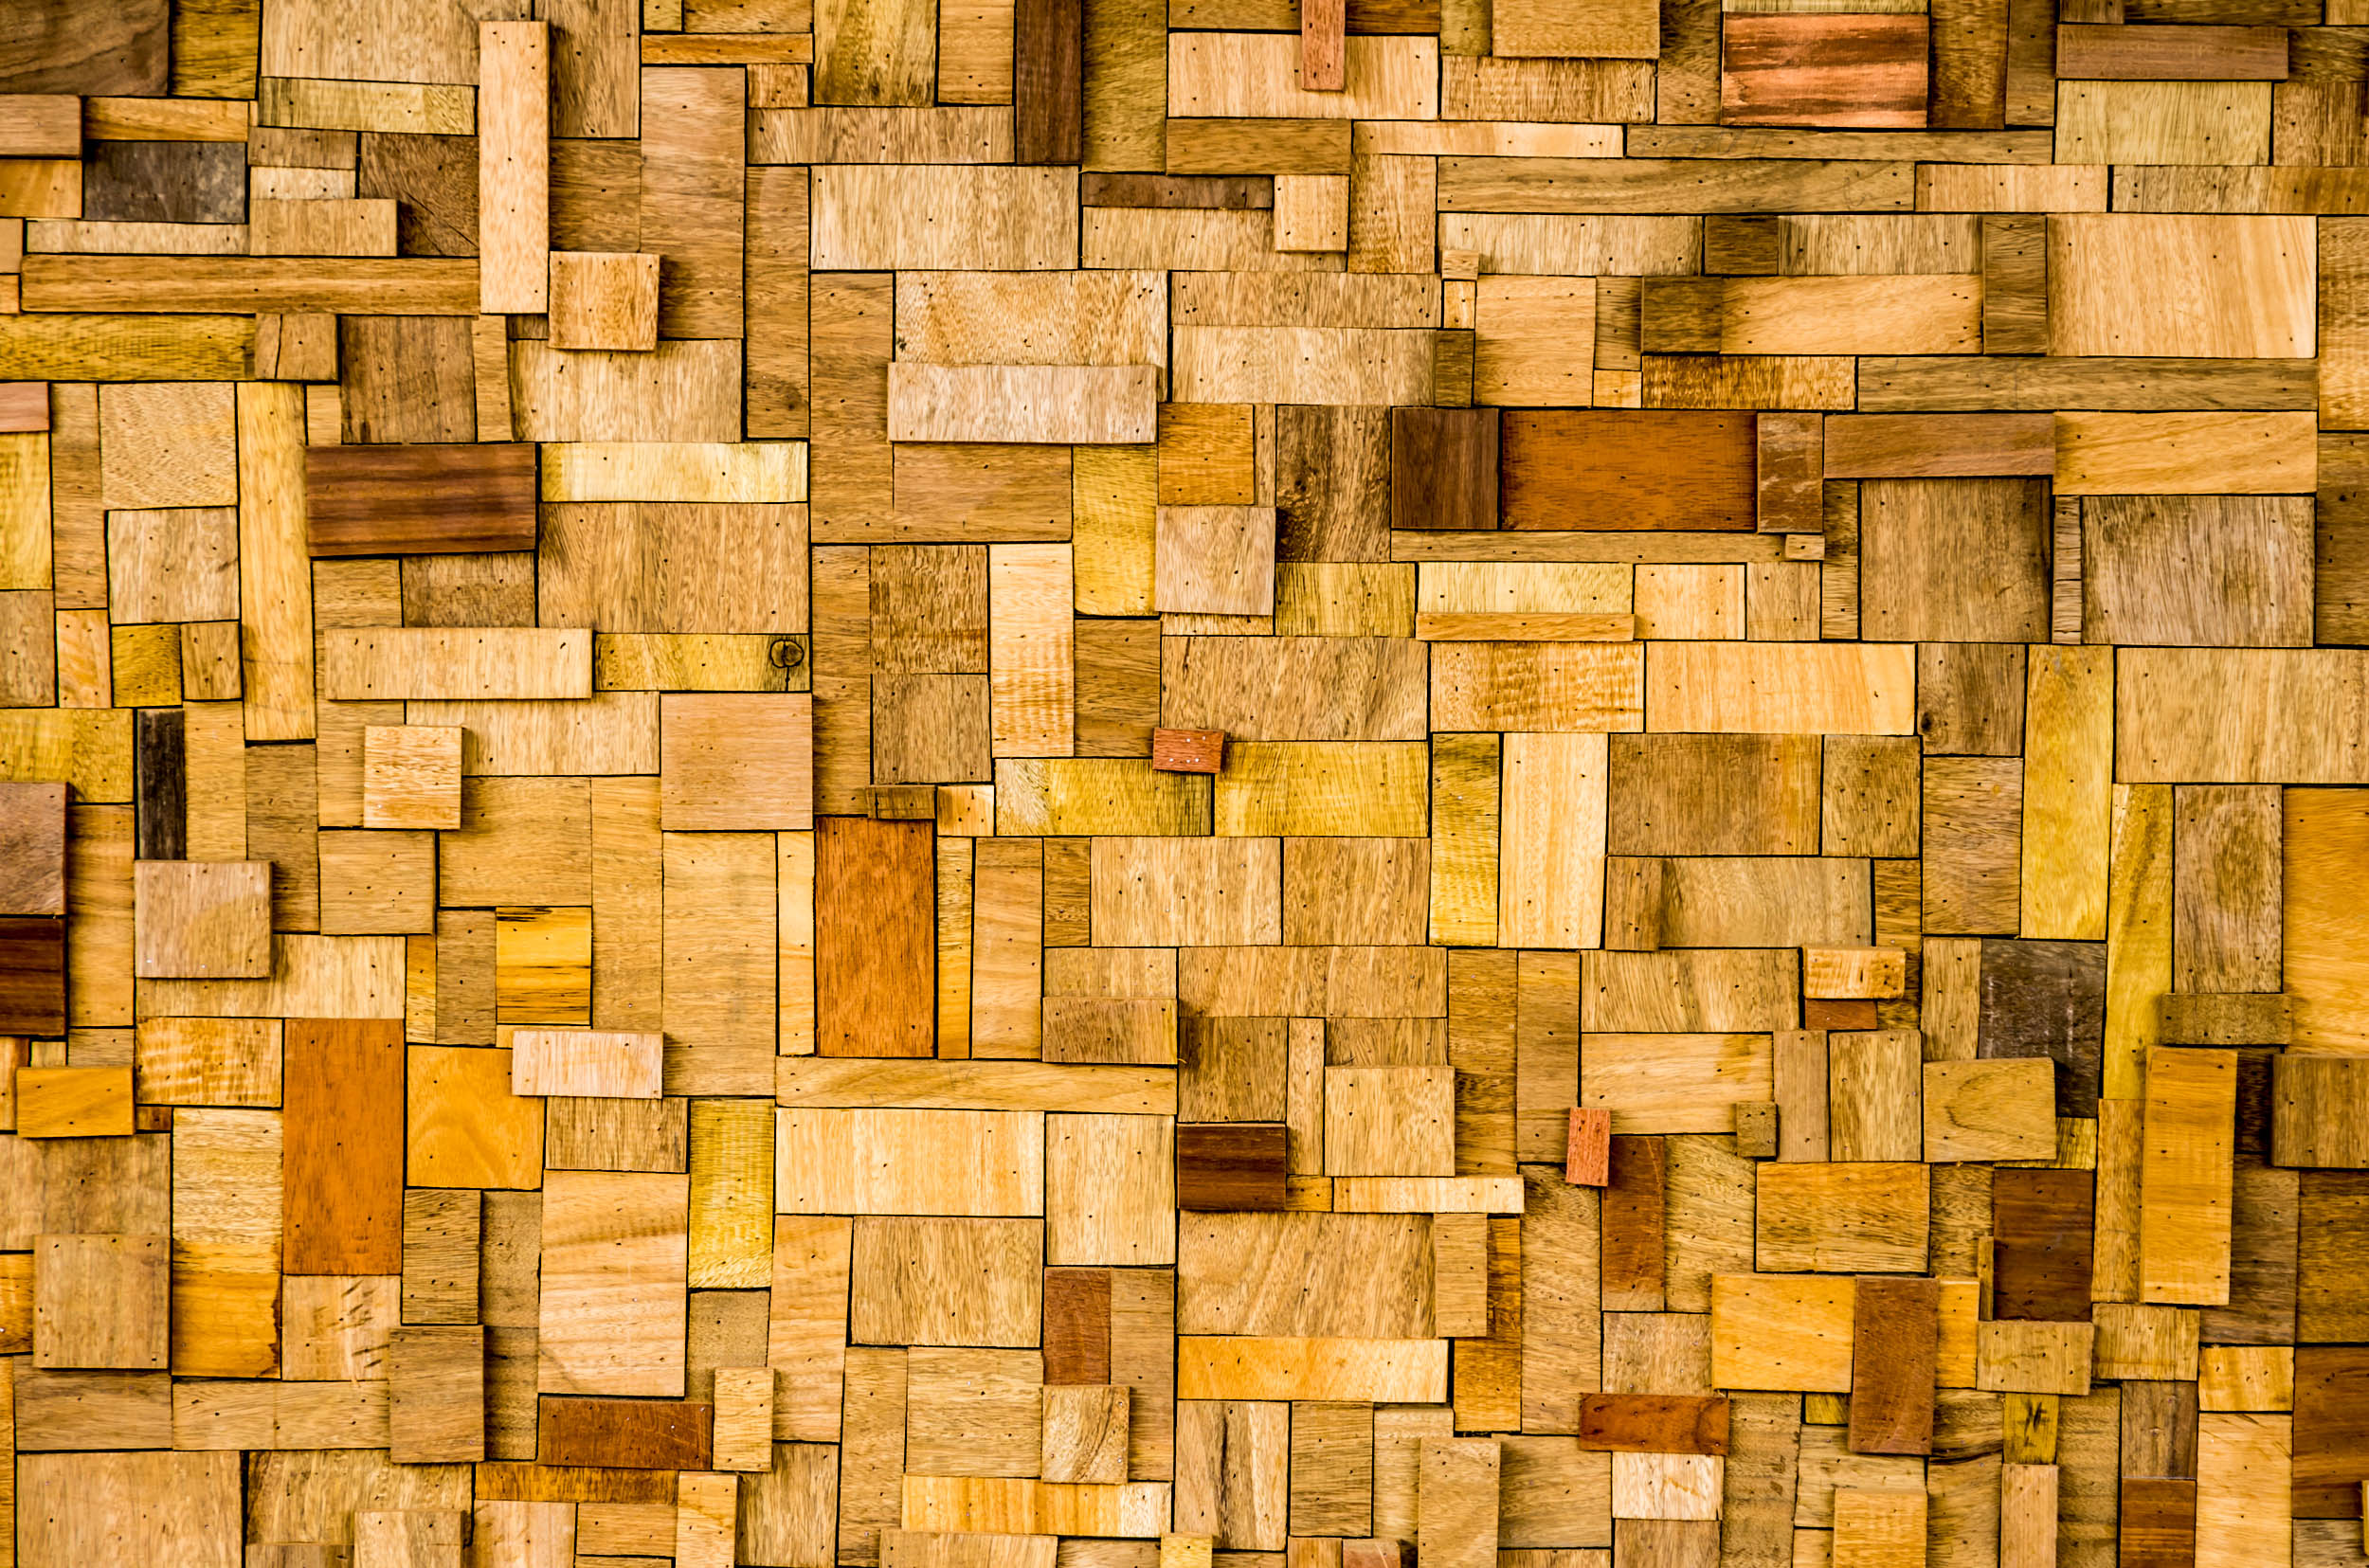 Wood Pattern Based Some Beautiful Wallpapers, Images In